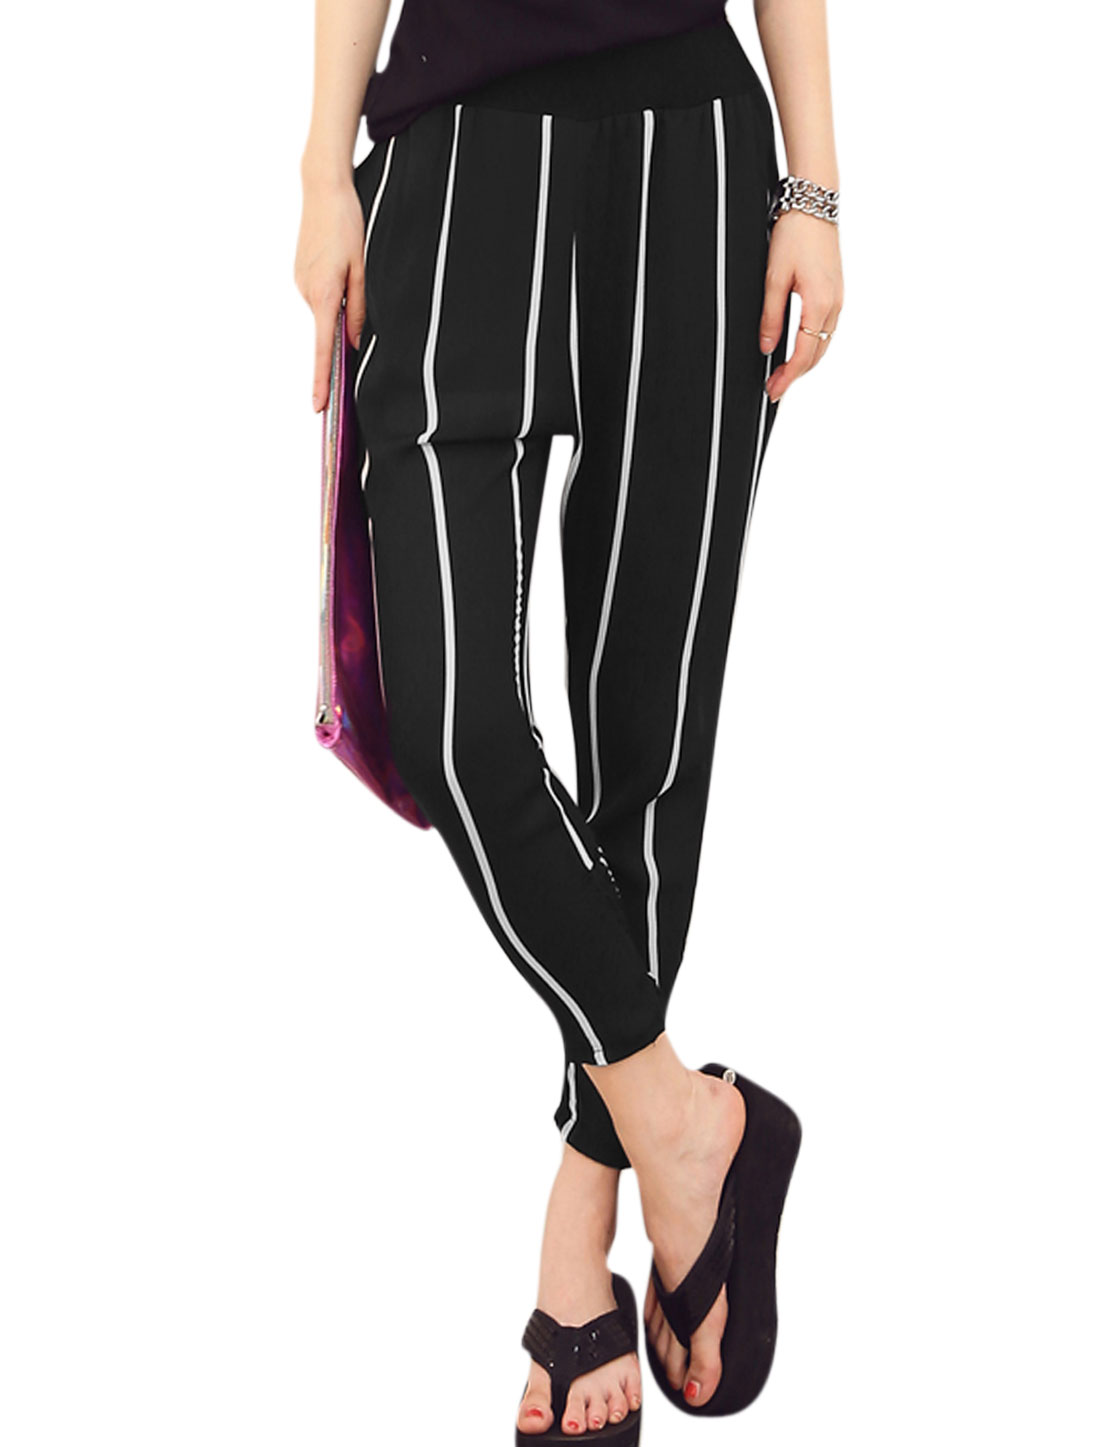 Lady Seam Pockets Vertical Stripes Pattern Stylish Cropped Harem Pants Black S